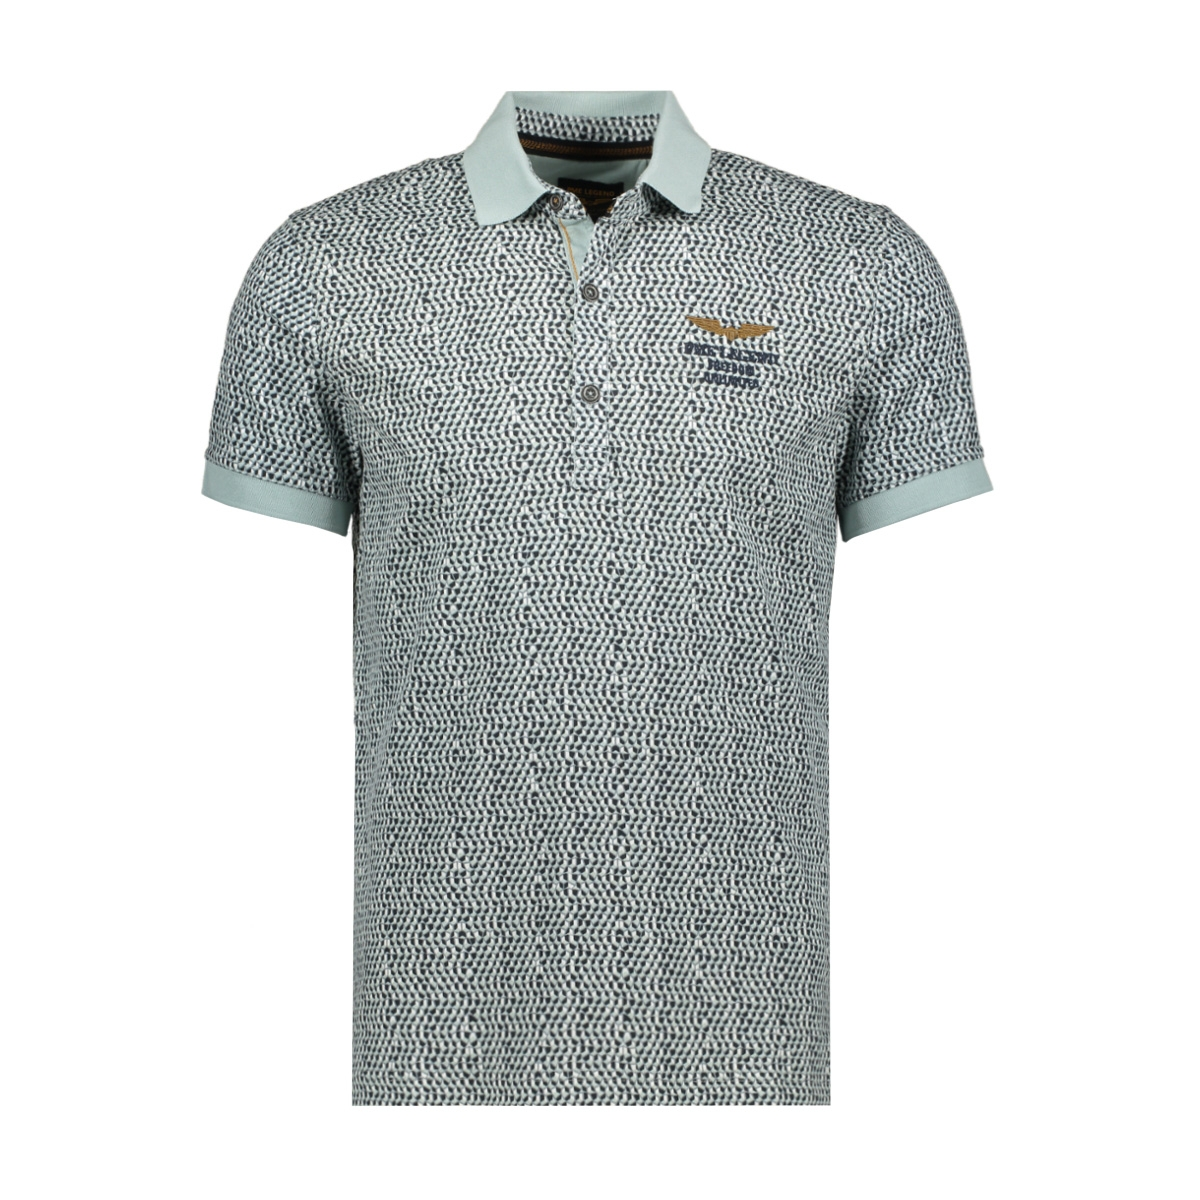 single jersey short sleeve polo ppss195852 pme legend polo 9084